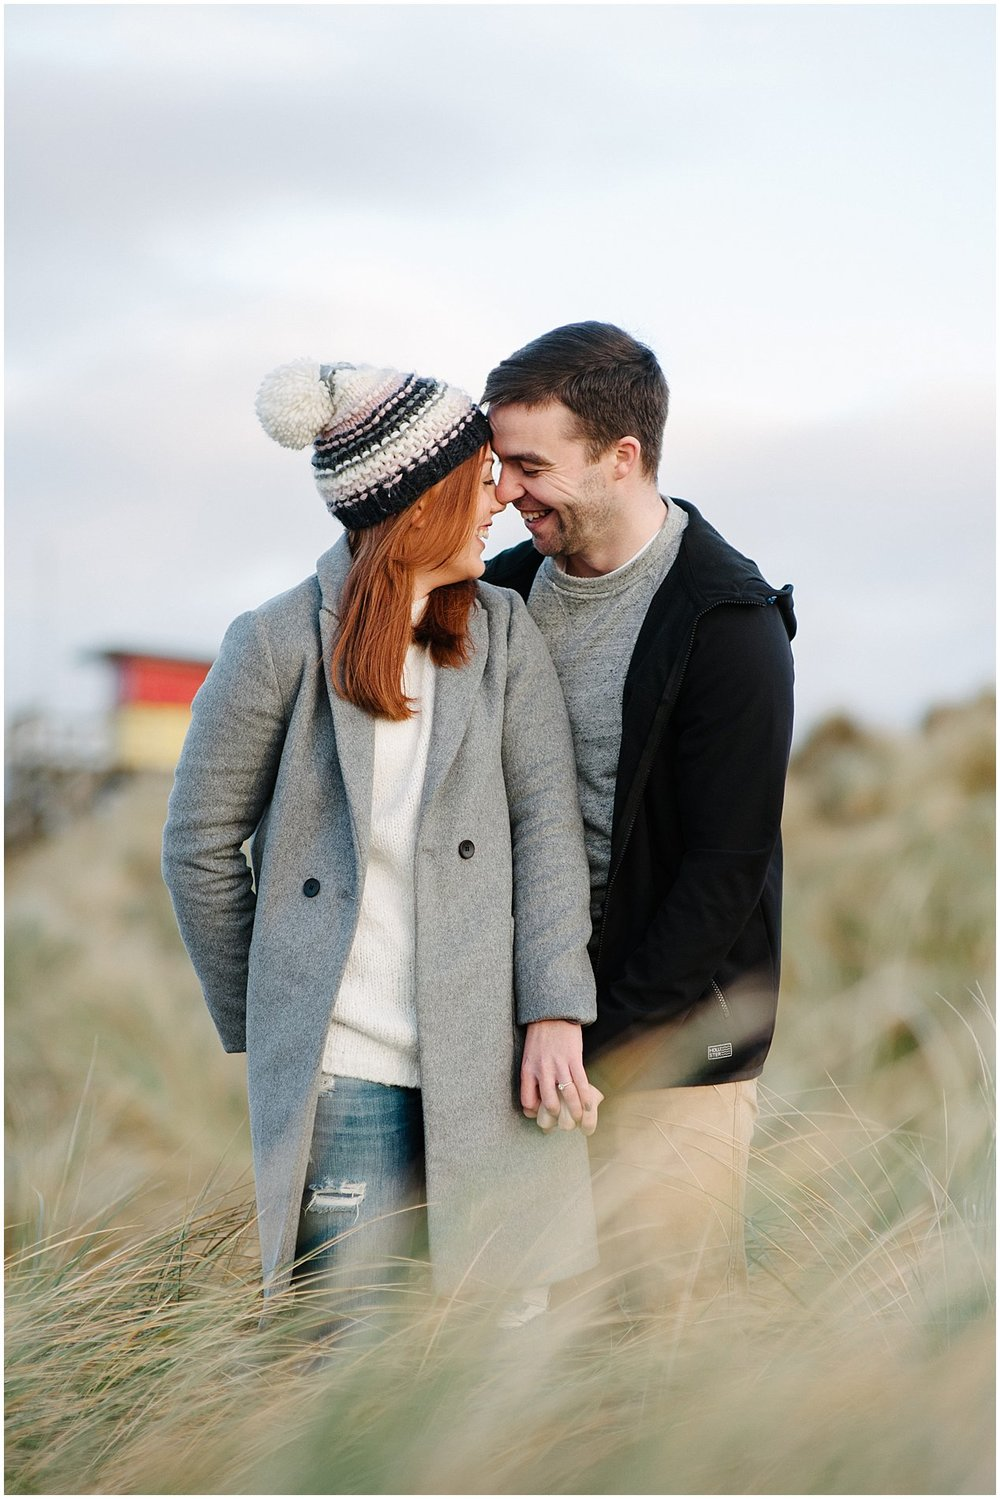 Sinead_Emmet_Rossnowlagh_Beach_pre_wedding_jude_browne_photography_0007.jpg